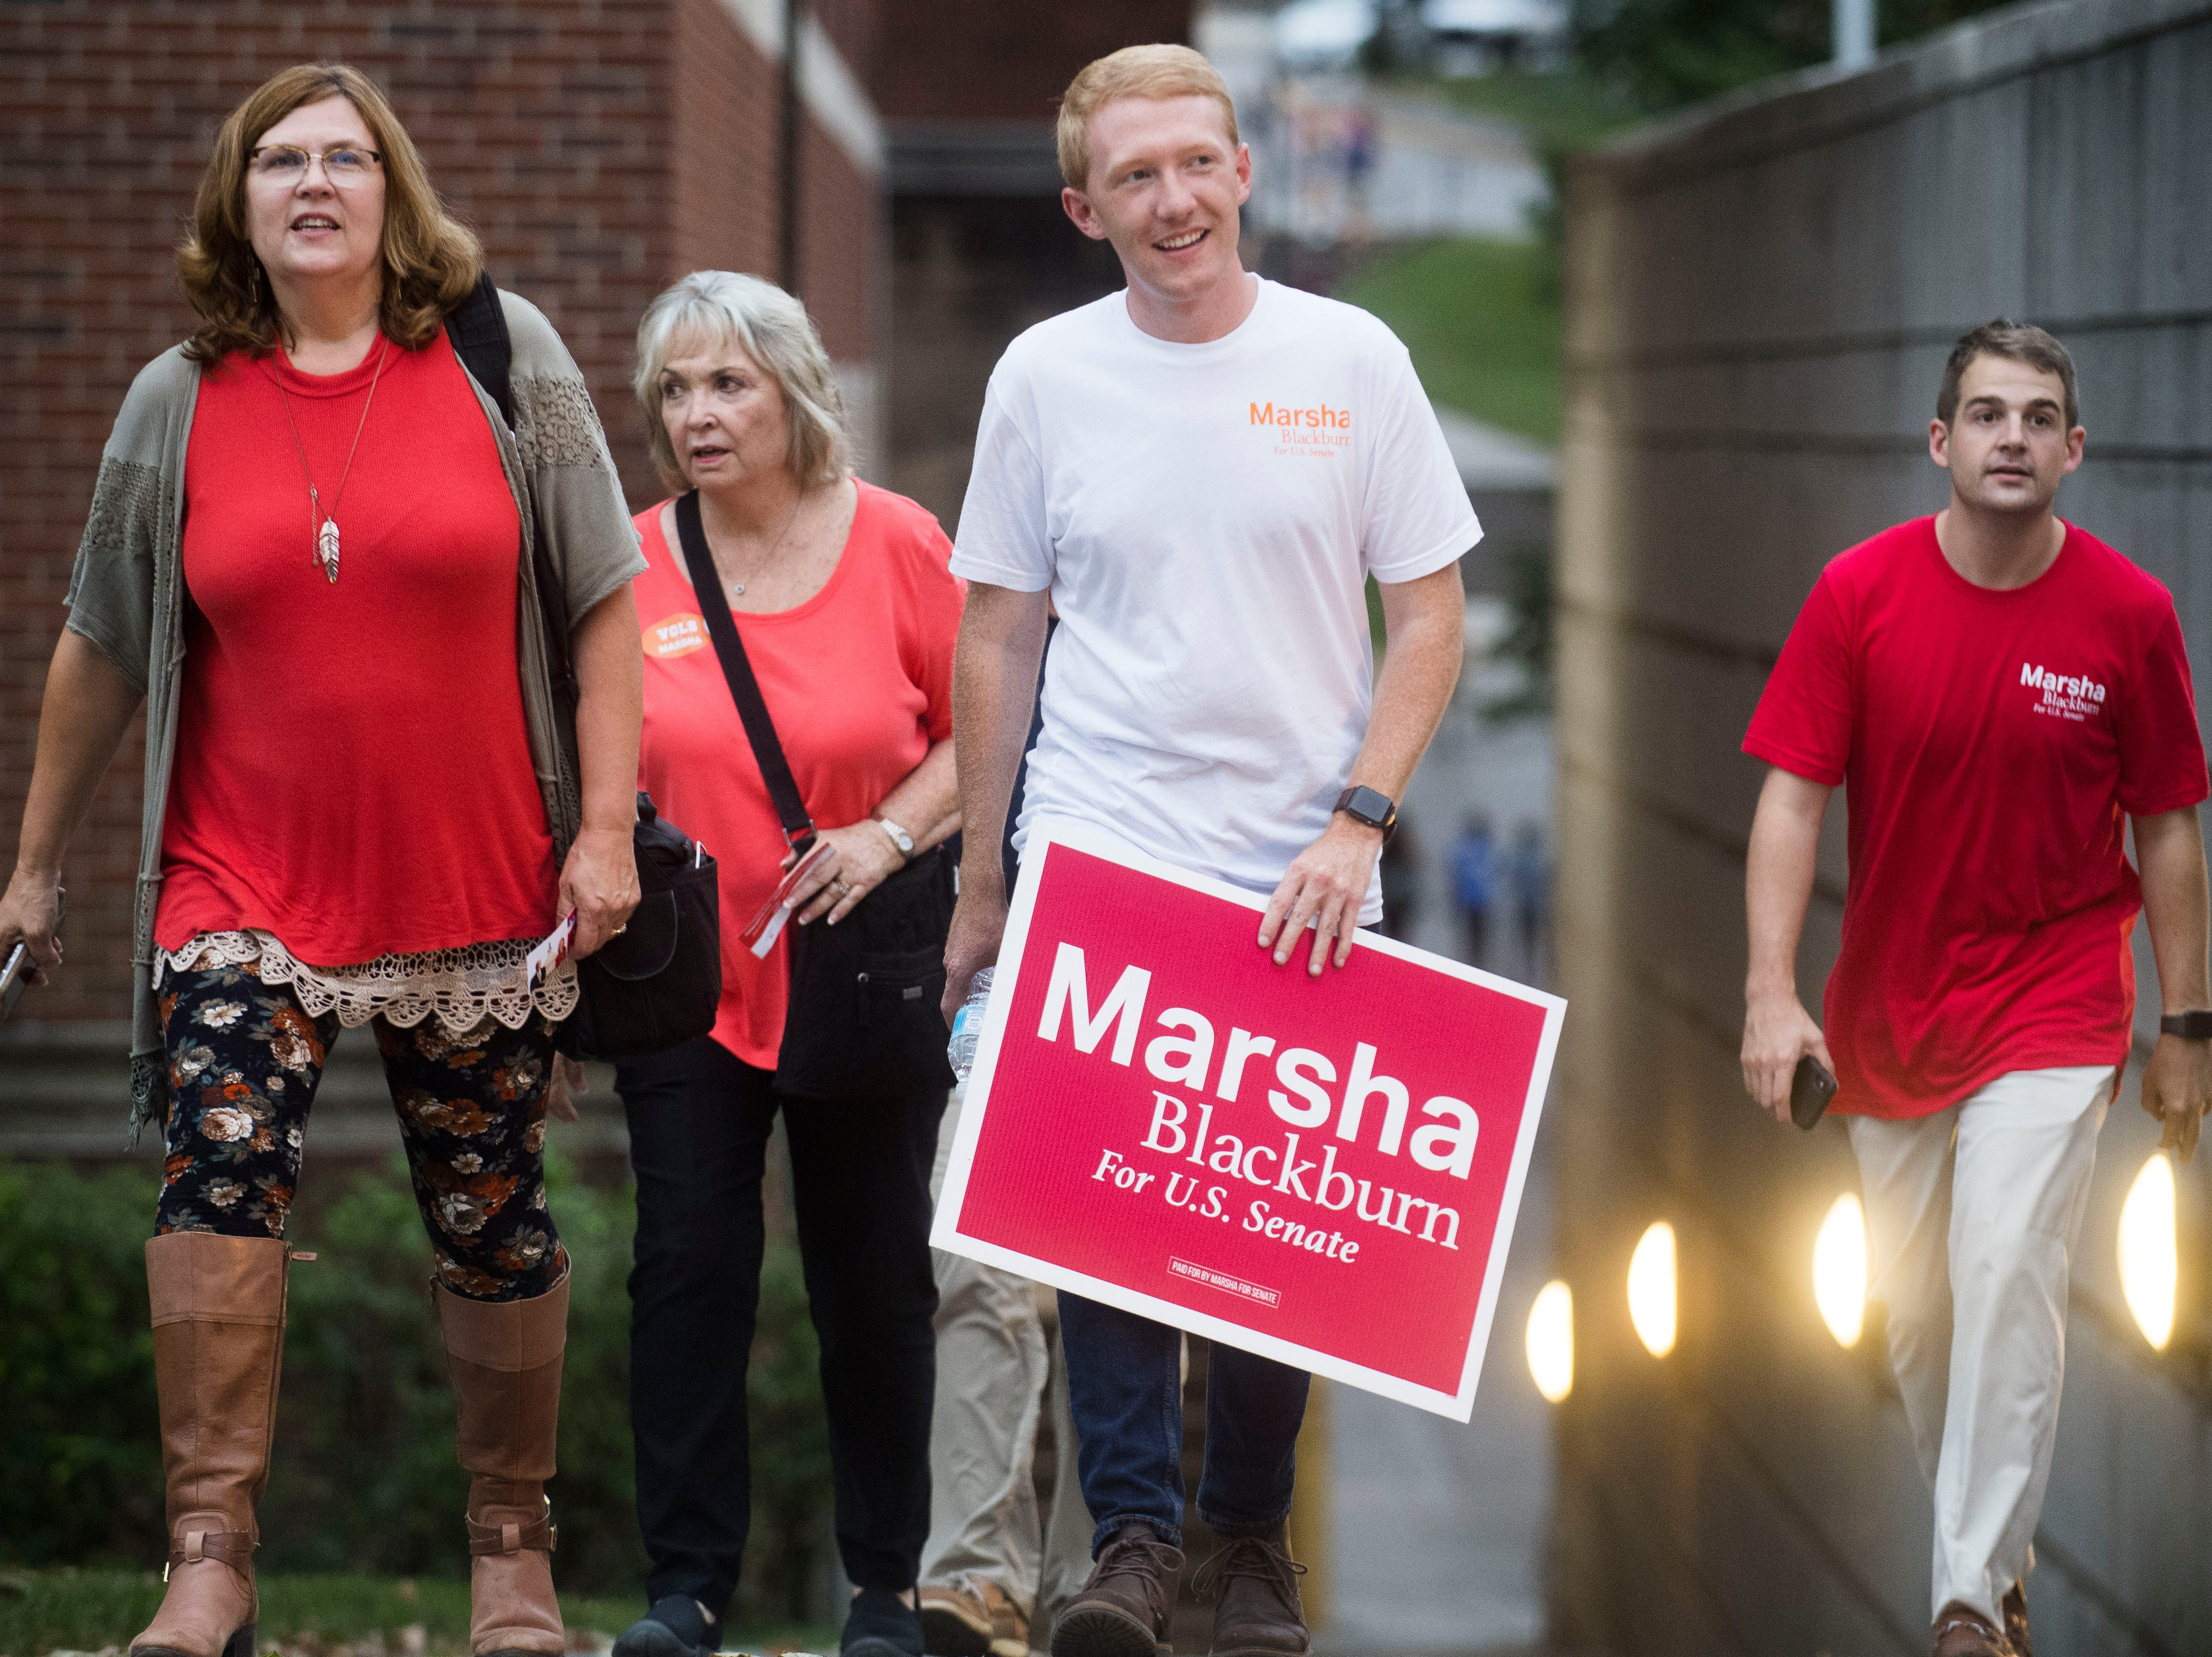 At center Michael Hensley, a Congressman Marsha Blackburn supporter, walks towards Cumberland Avenue before a U.S. Senate debate between Gov. Phil Bredesen and Blackburn at the University of Tennessee's Howard H. Baker Jr. Center for Public Policy Wednesday, Oct. 10, 2018. The Senate seat is being vacated by retiring Sen. Bob Corker.